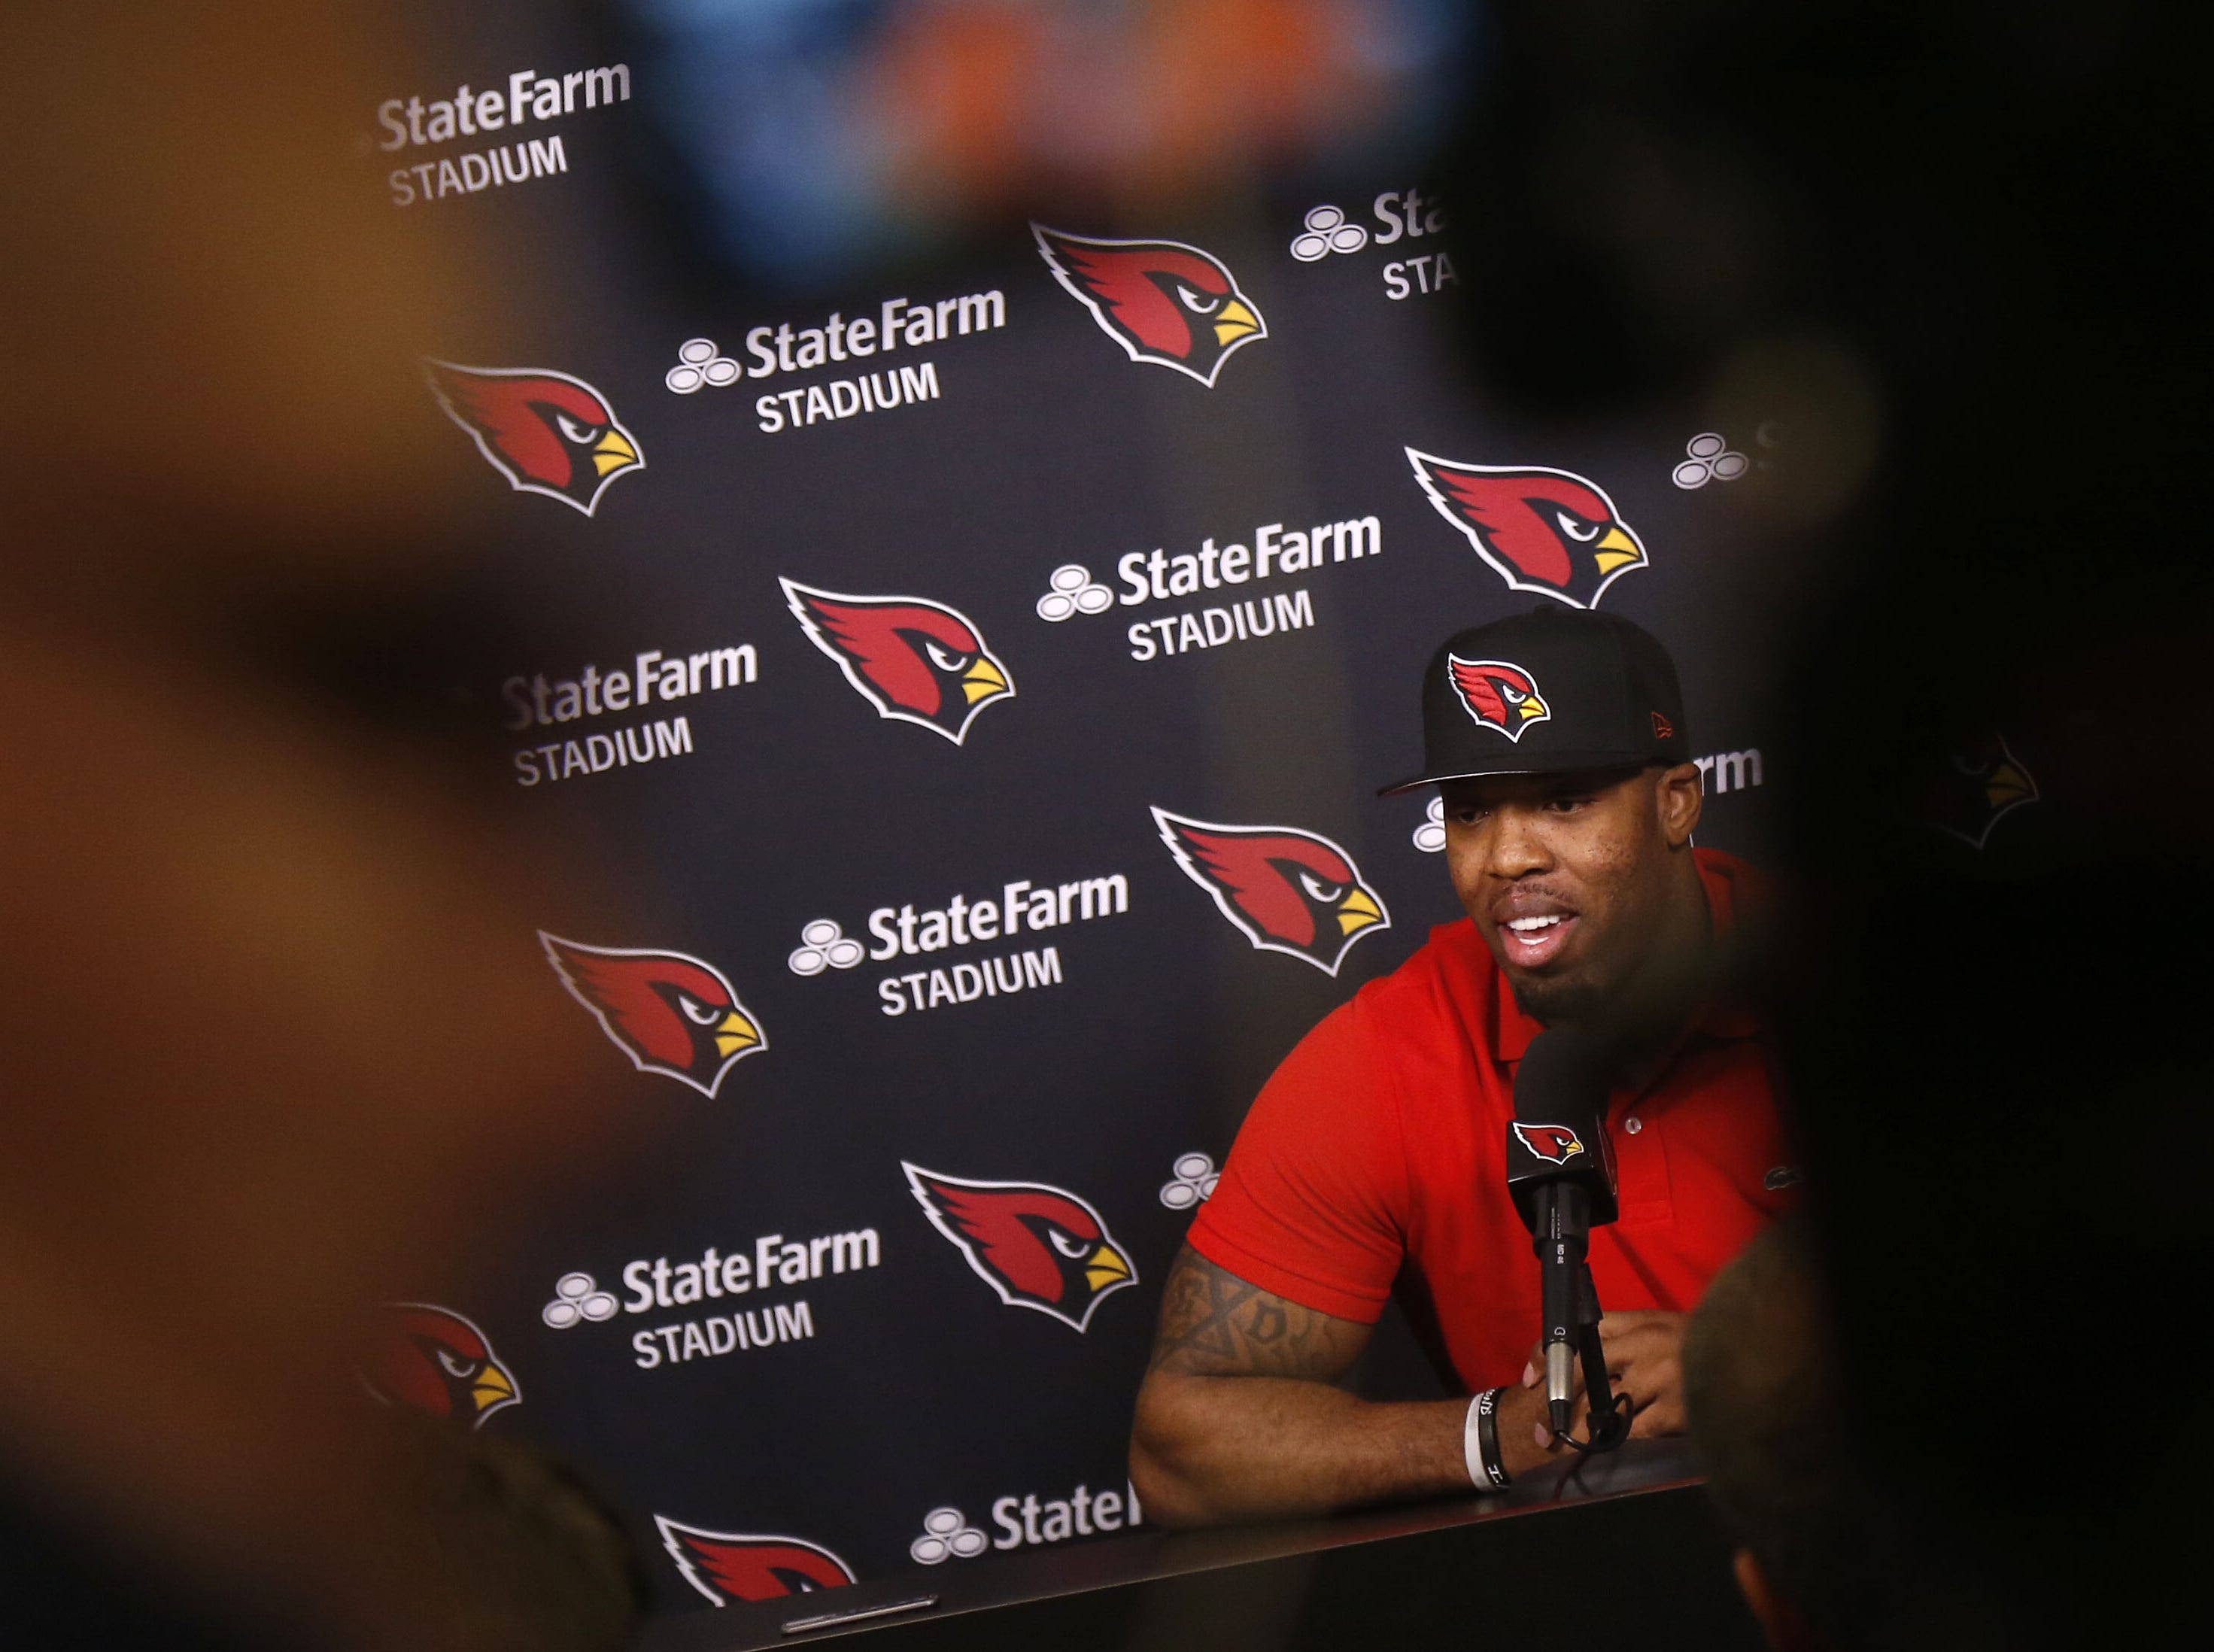 Terrell Suggs speaks with the media during his introductory press conference at the Arizona Cardinals Training Facility in Tempe, Ariz. on March 14, 2019.